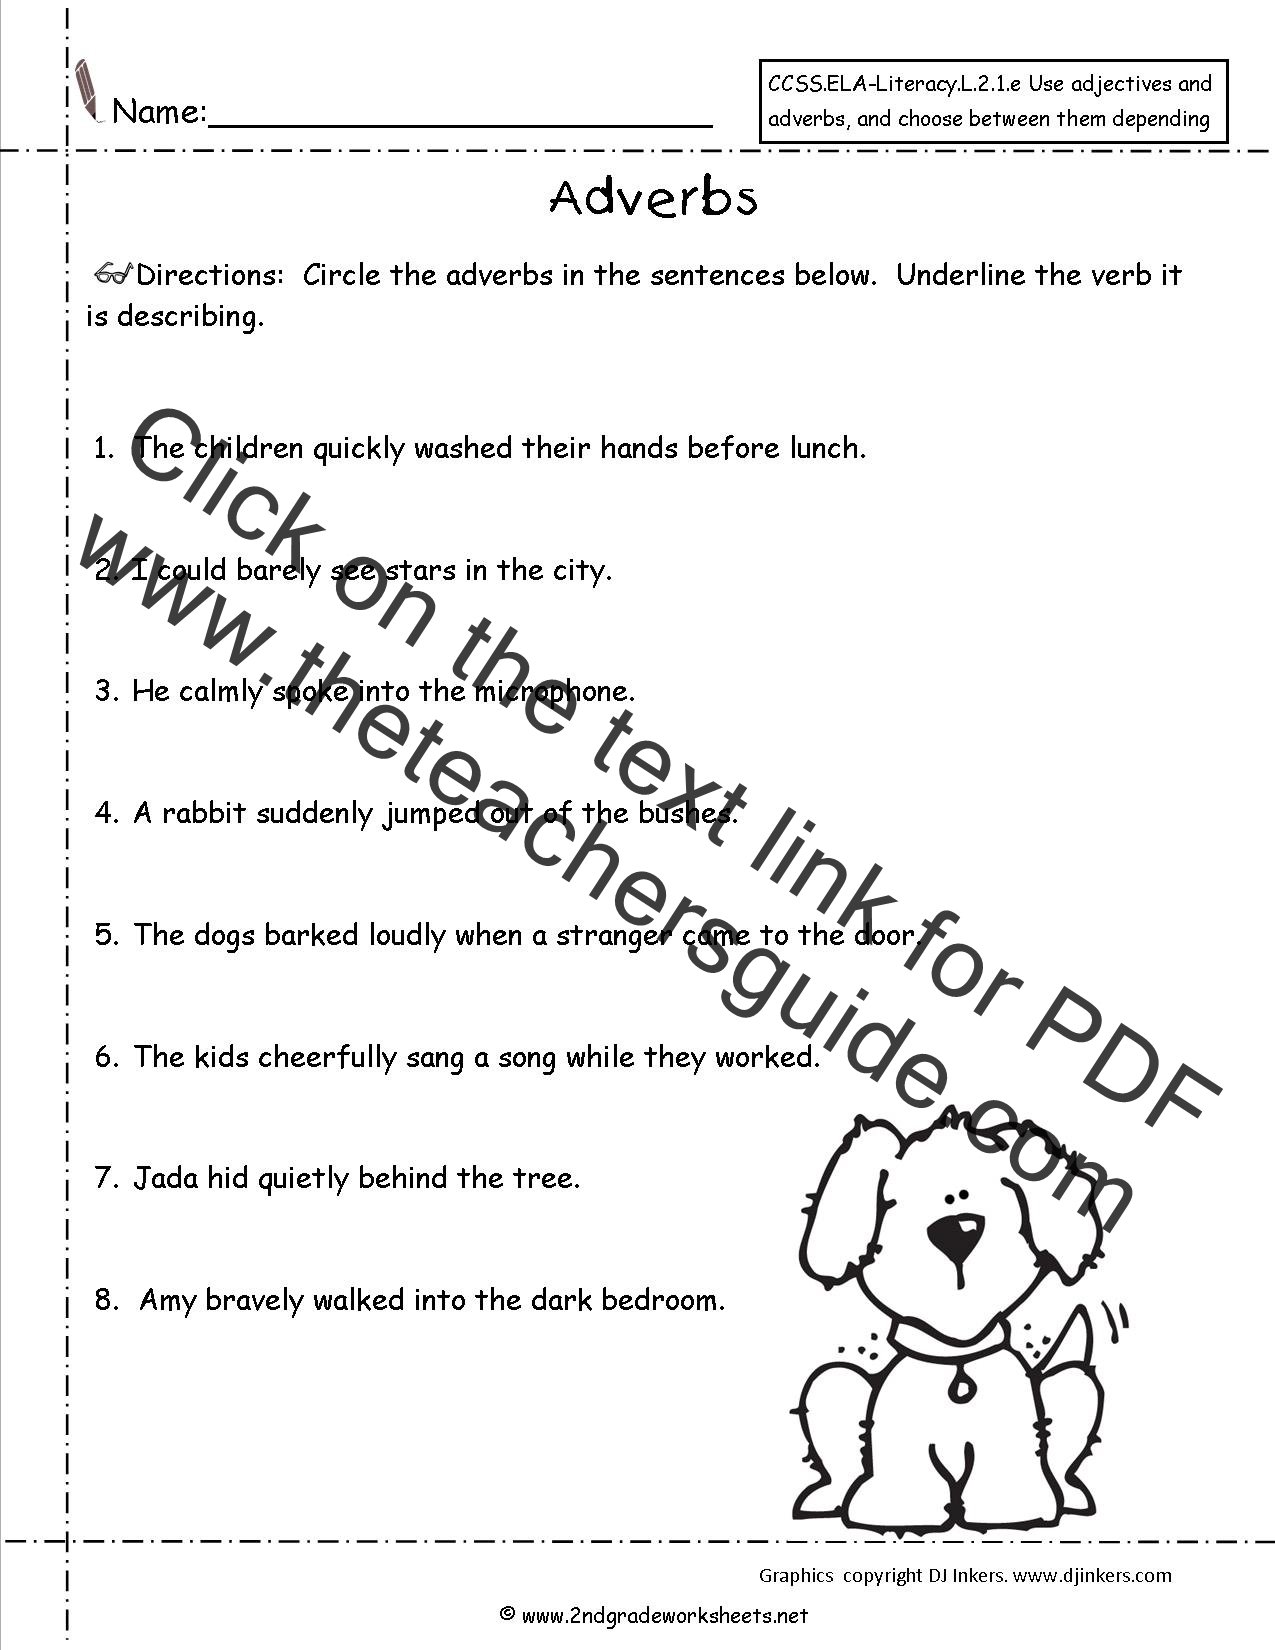 Free Using Adjectives and Adverbs Worksheets – Adverbs Worksheet